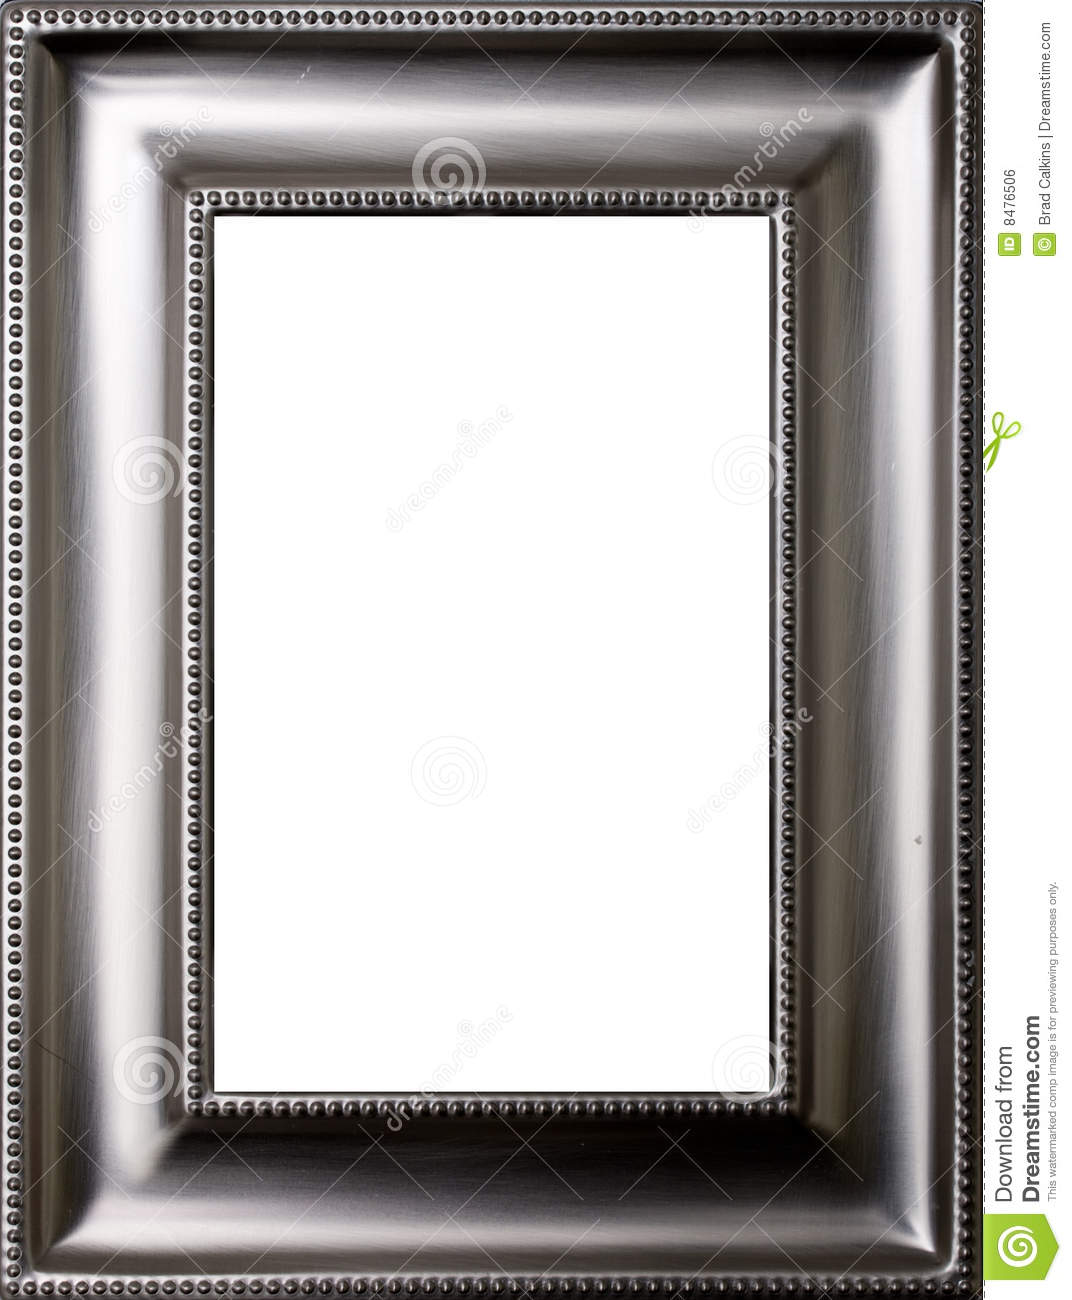 Metal Picture Frames Wholesale from loadingtag.ga Browse our custom cut Metal Picture Frames. On this page you are viewing 15 Metal Picture Frame Mouldings per page. This is 1 of 39 pages of custom cut metal picture frames. Assembly hardware is included with each custom cut Metal Picture Frame.